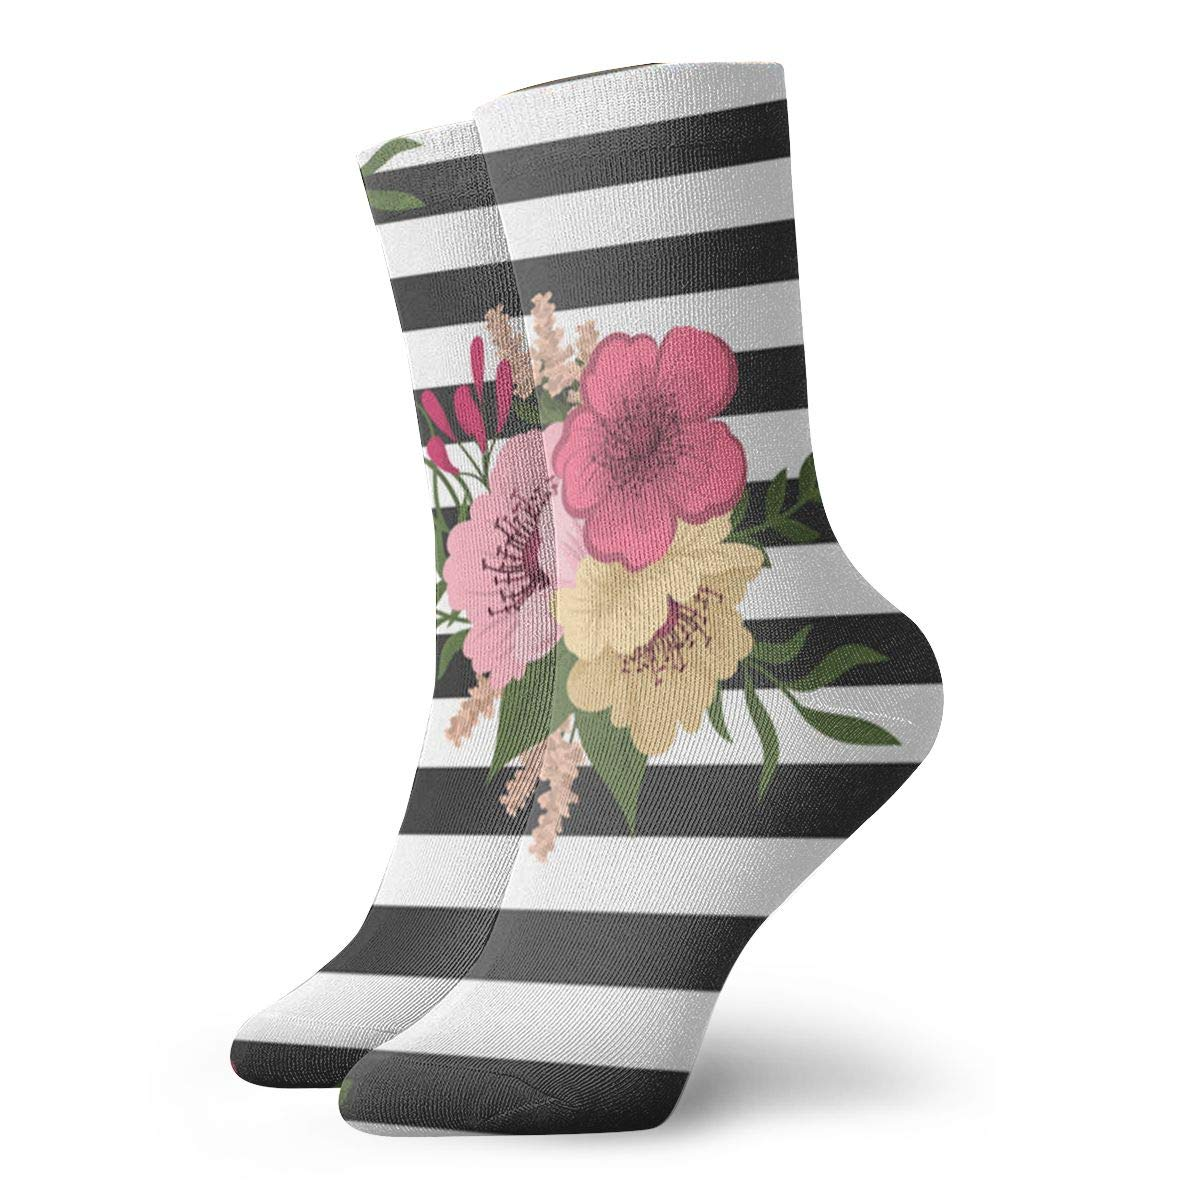 Seamless-floral-pattern Unisex Funny Casual Crew Socks Athletic Socks For Boys Girls Kids Teenagers